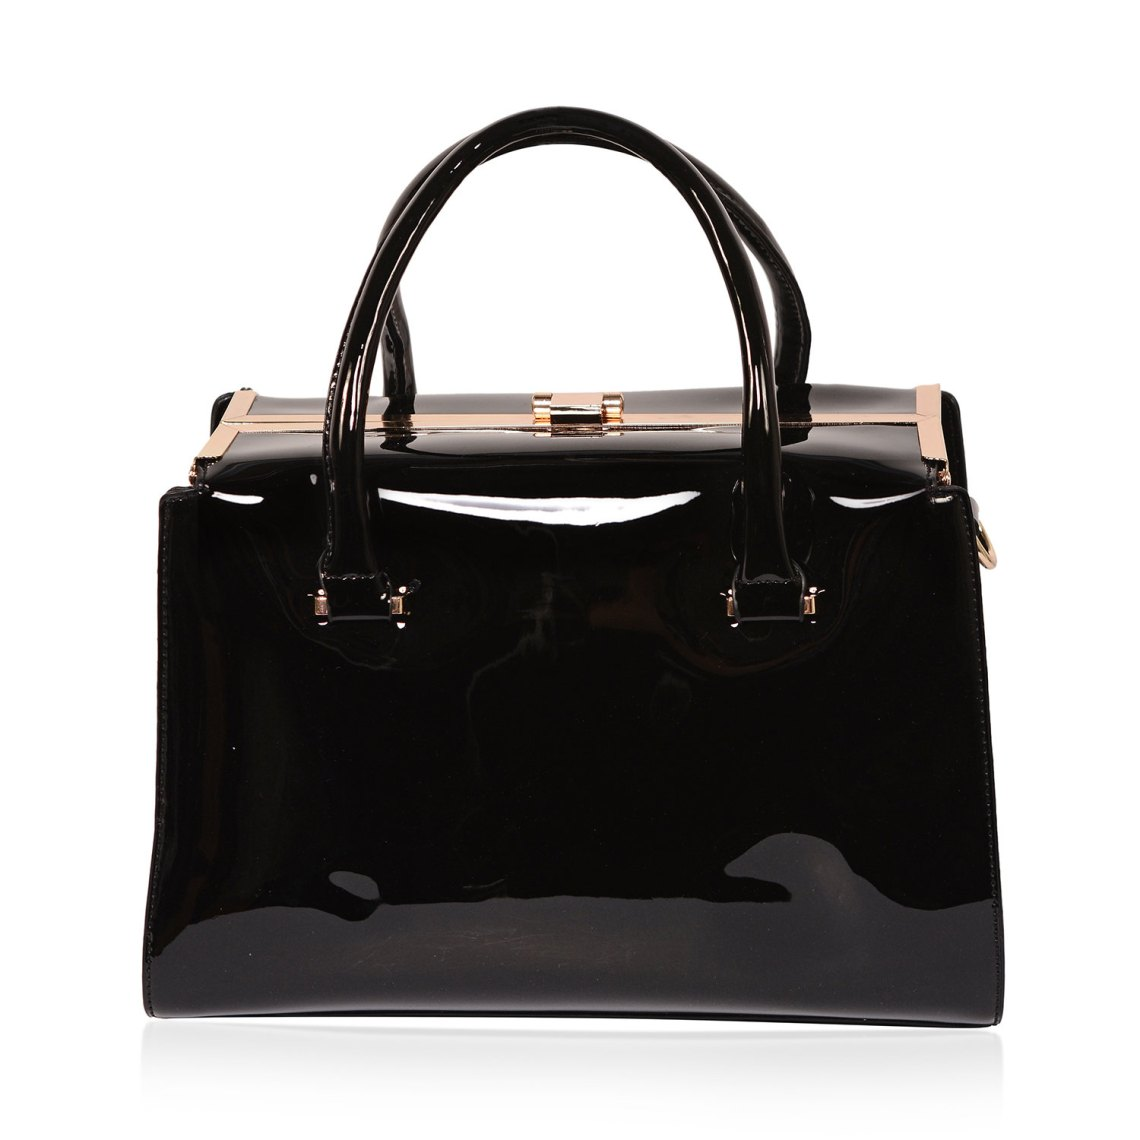 J Francis - Black Faux Leather Tote Bag